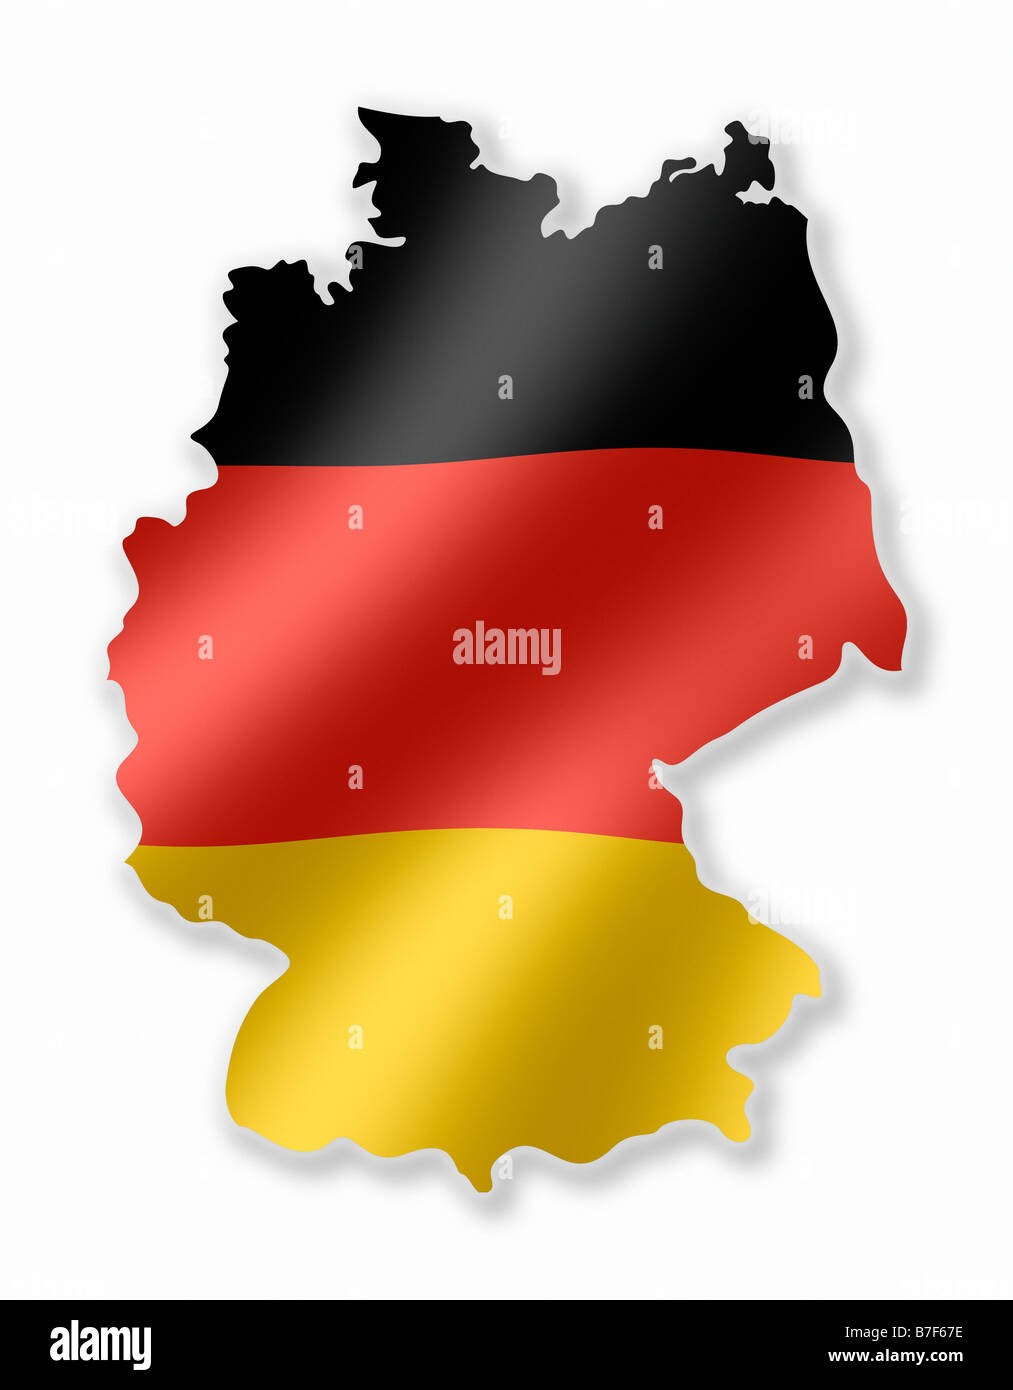 Germany German Deutschland Country Map Outline With National Flag Inside - Stock Image